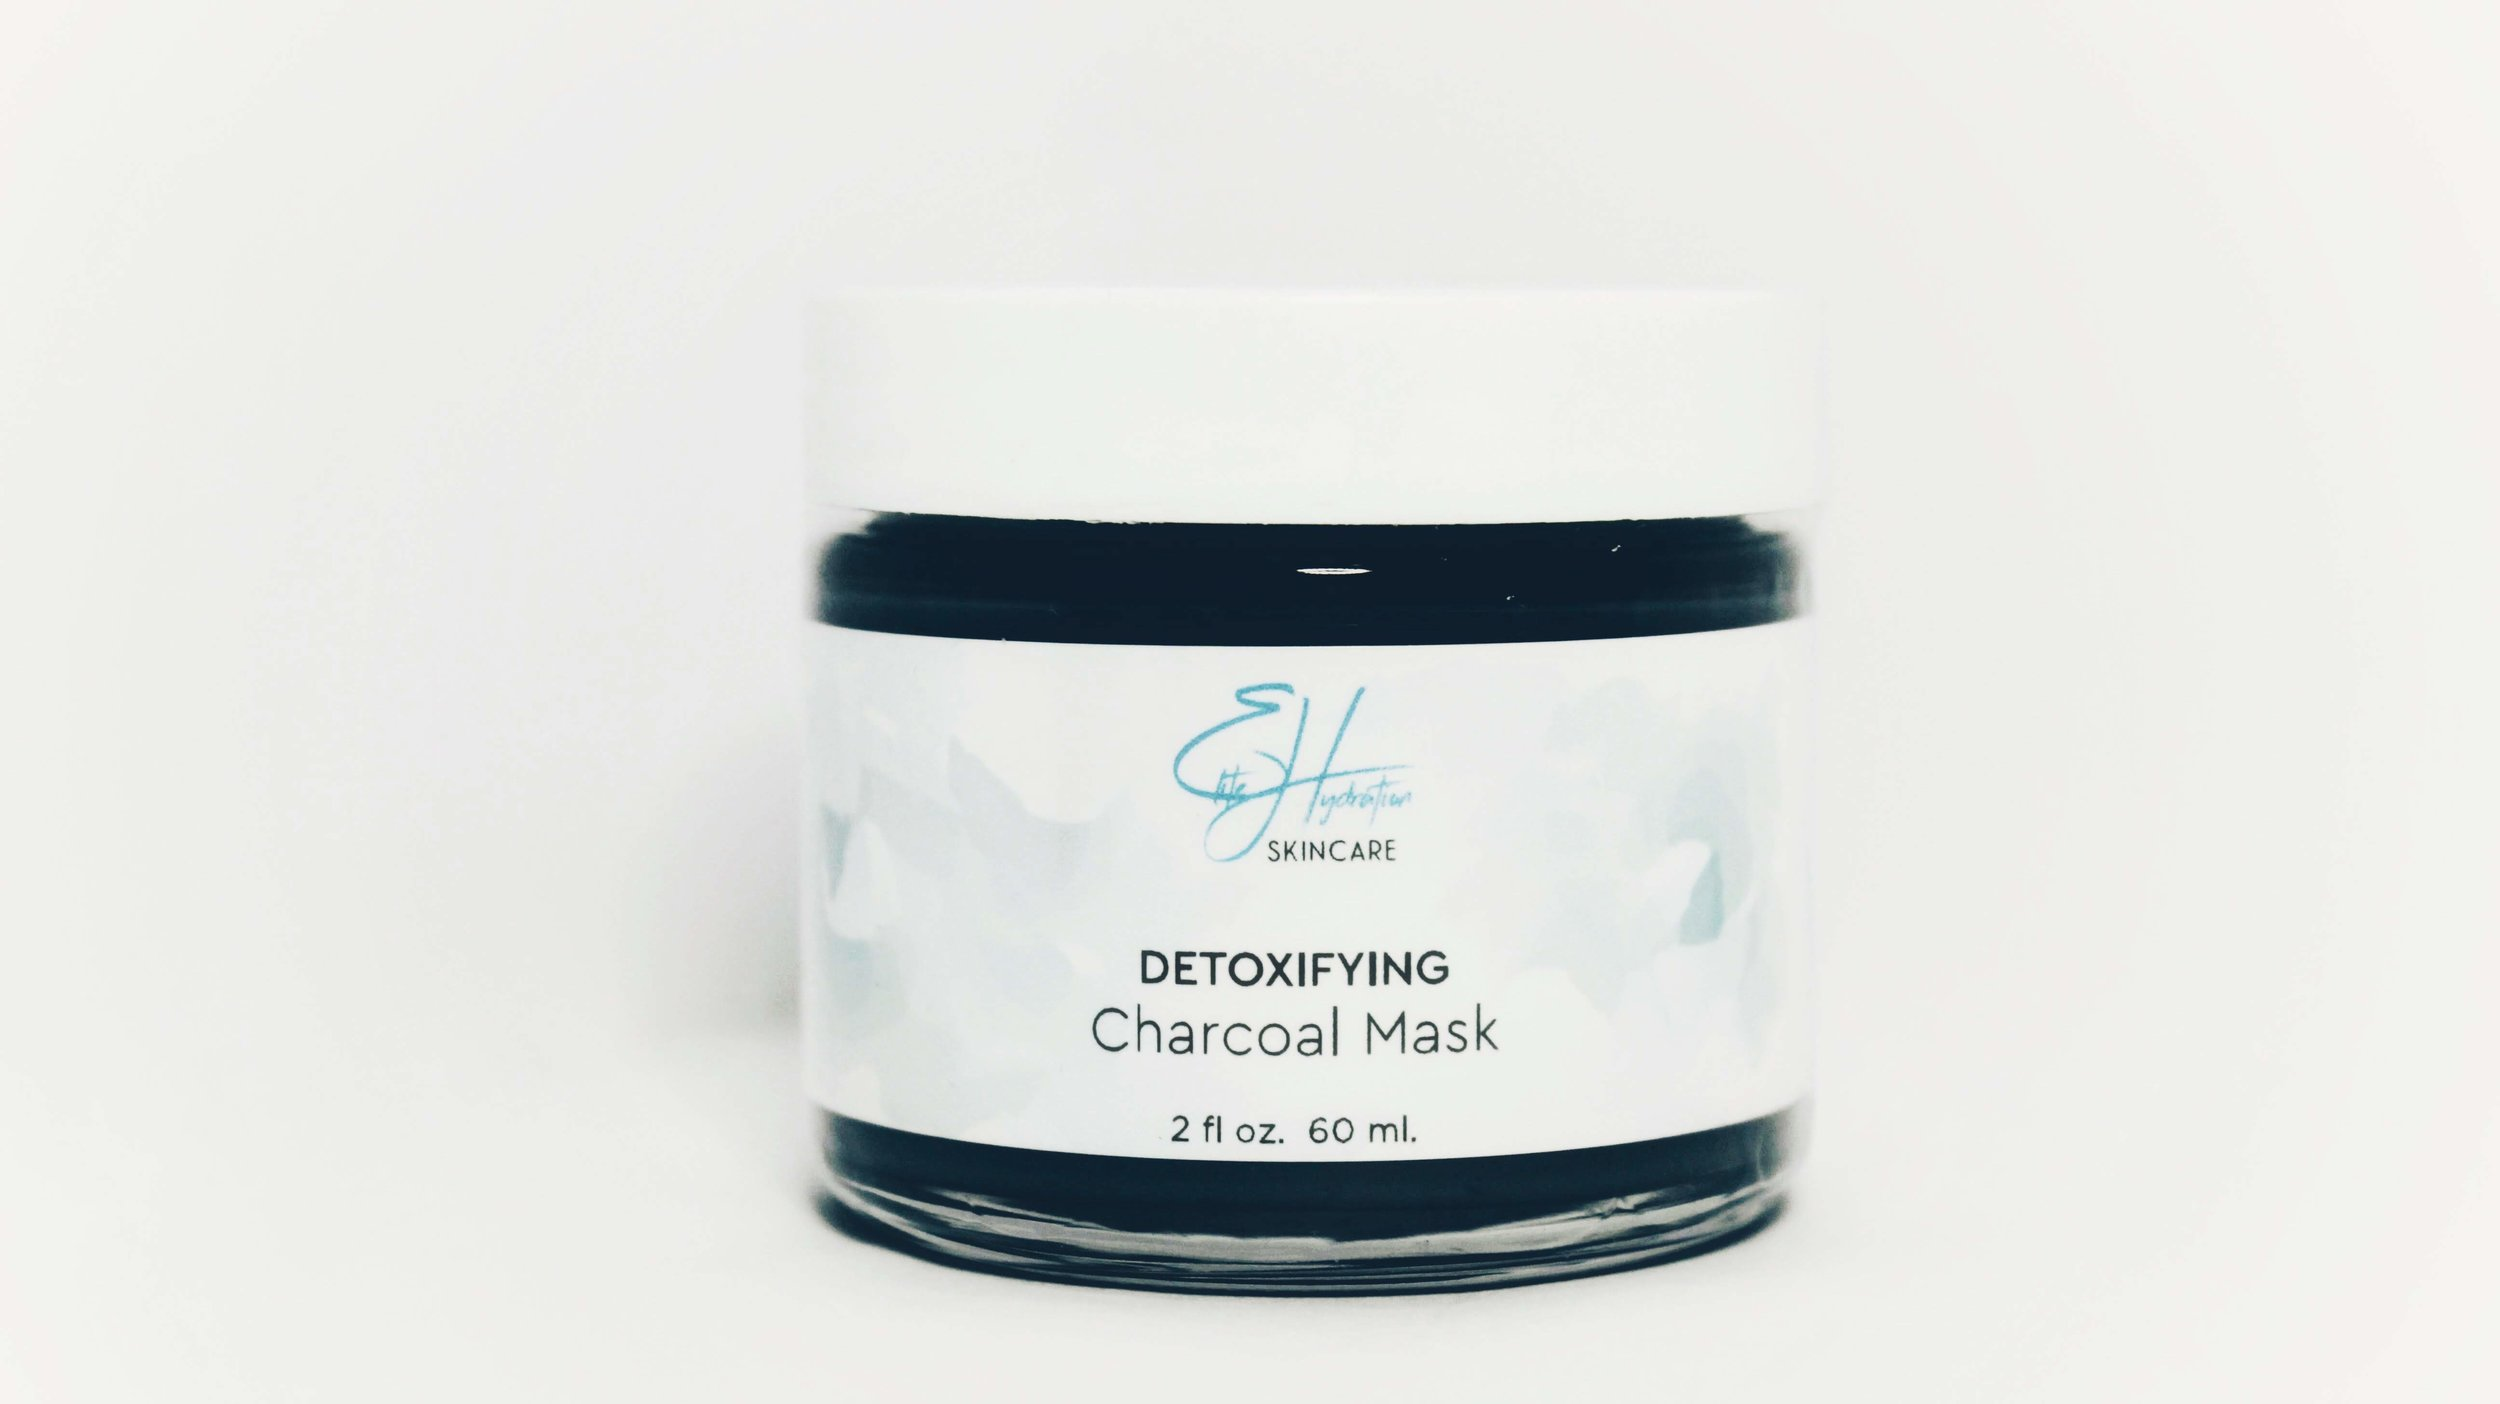 DETOXIFYING CHARCOAL MASK - ____WITH 3 EARTH CLAYS & ACTIVATED CHARCOAL- Gently cleanses stressed, polluted skin- Eliminates oils & dirt while reducing pores- Leaves face feeling refreshed & radiant